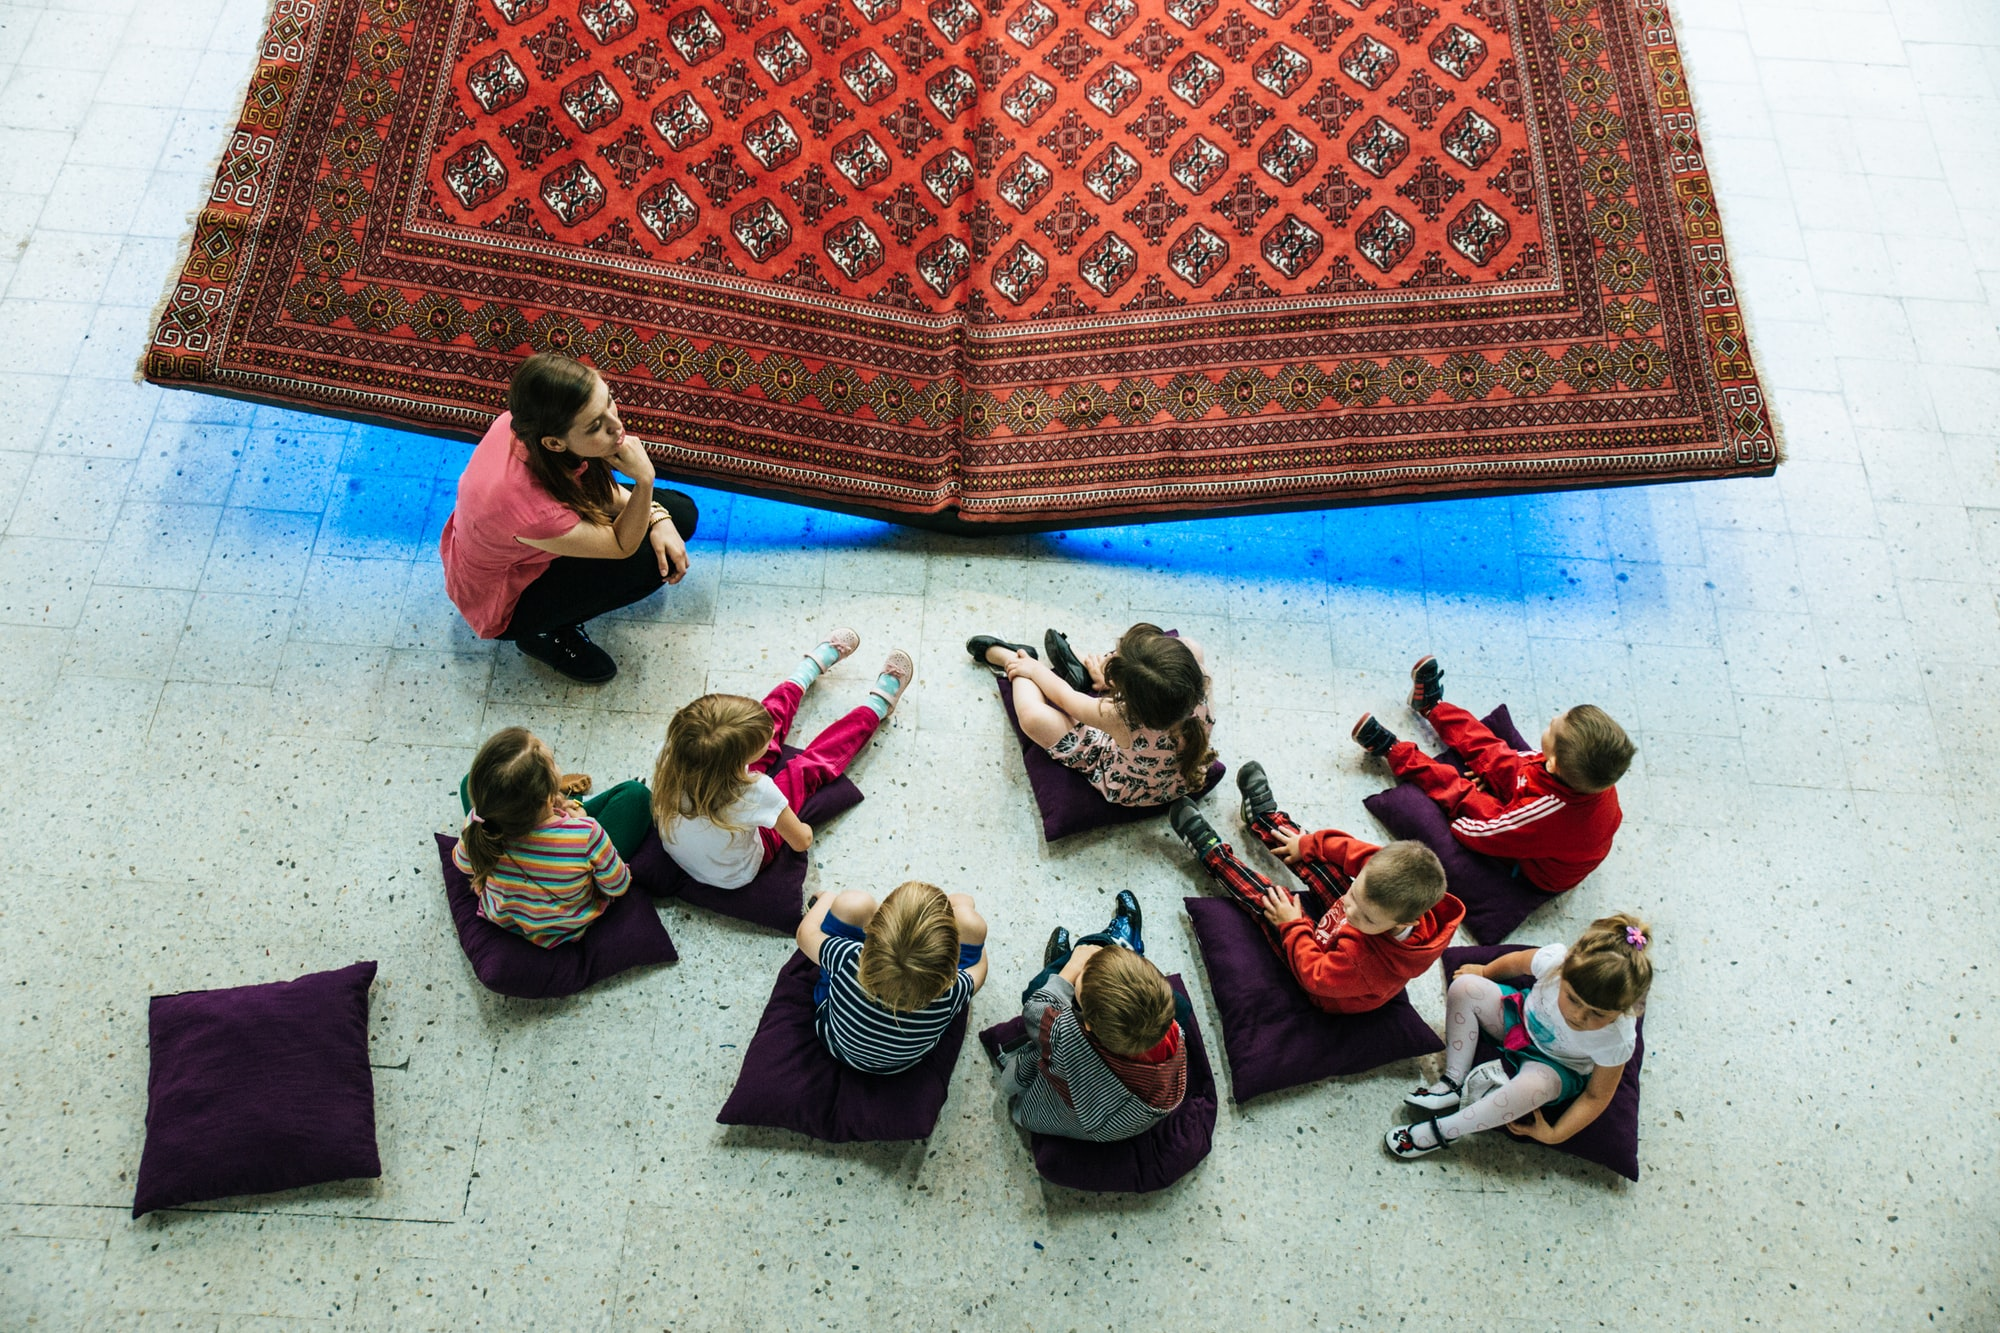 Does Empathy Learning and Spiritual Growth Make Sense for Teachers in the Current World?